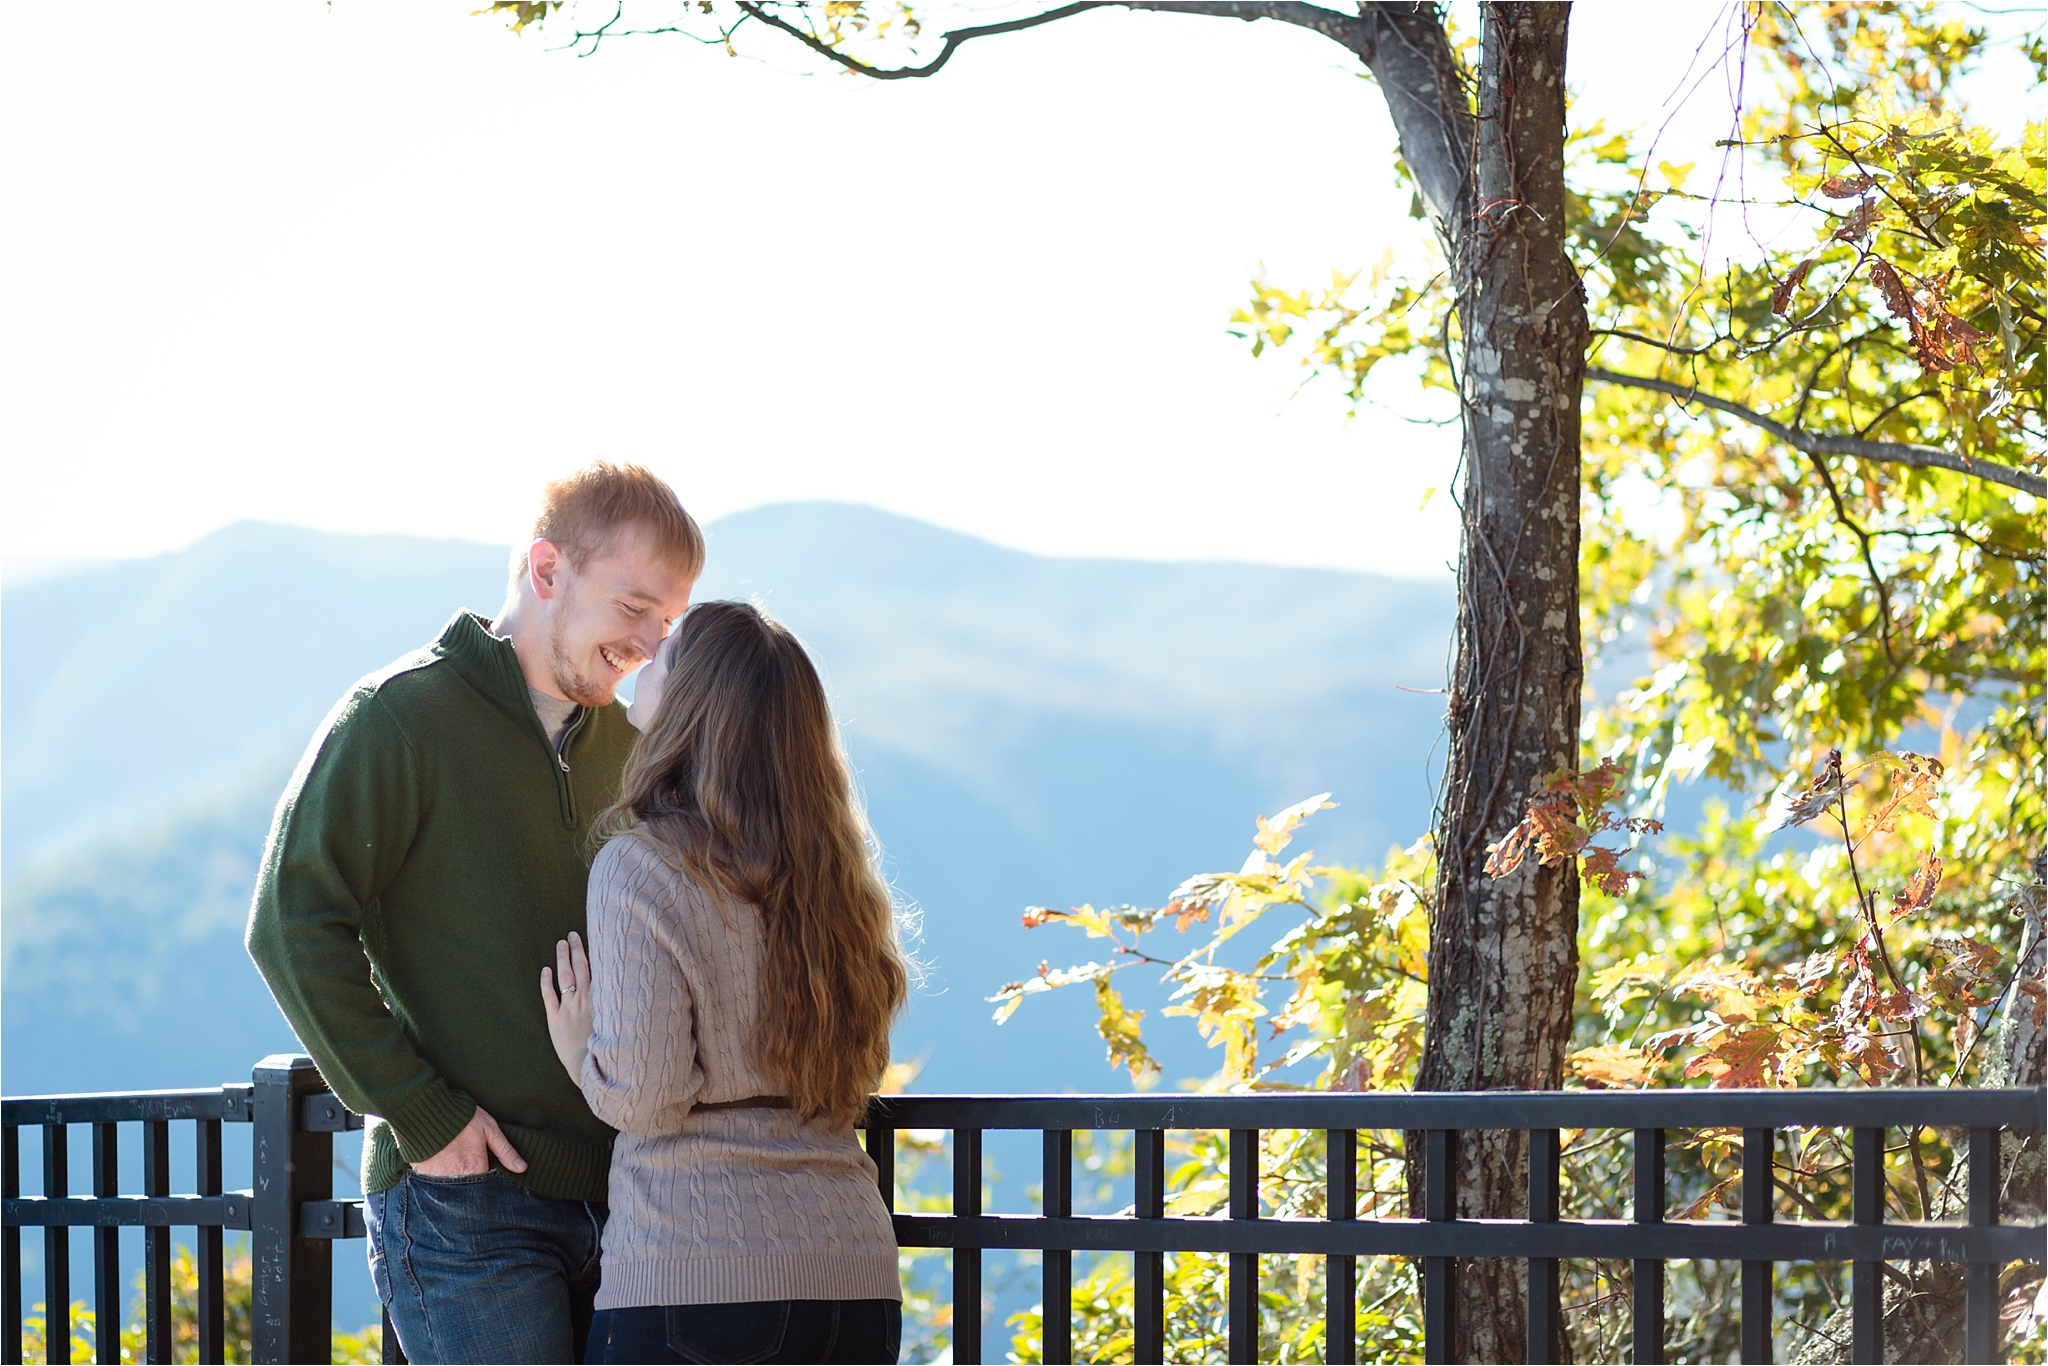 caesars-head-engagement-shoot-1_blog.jpg